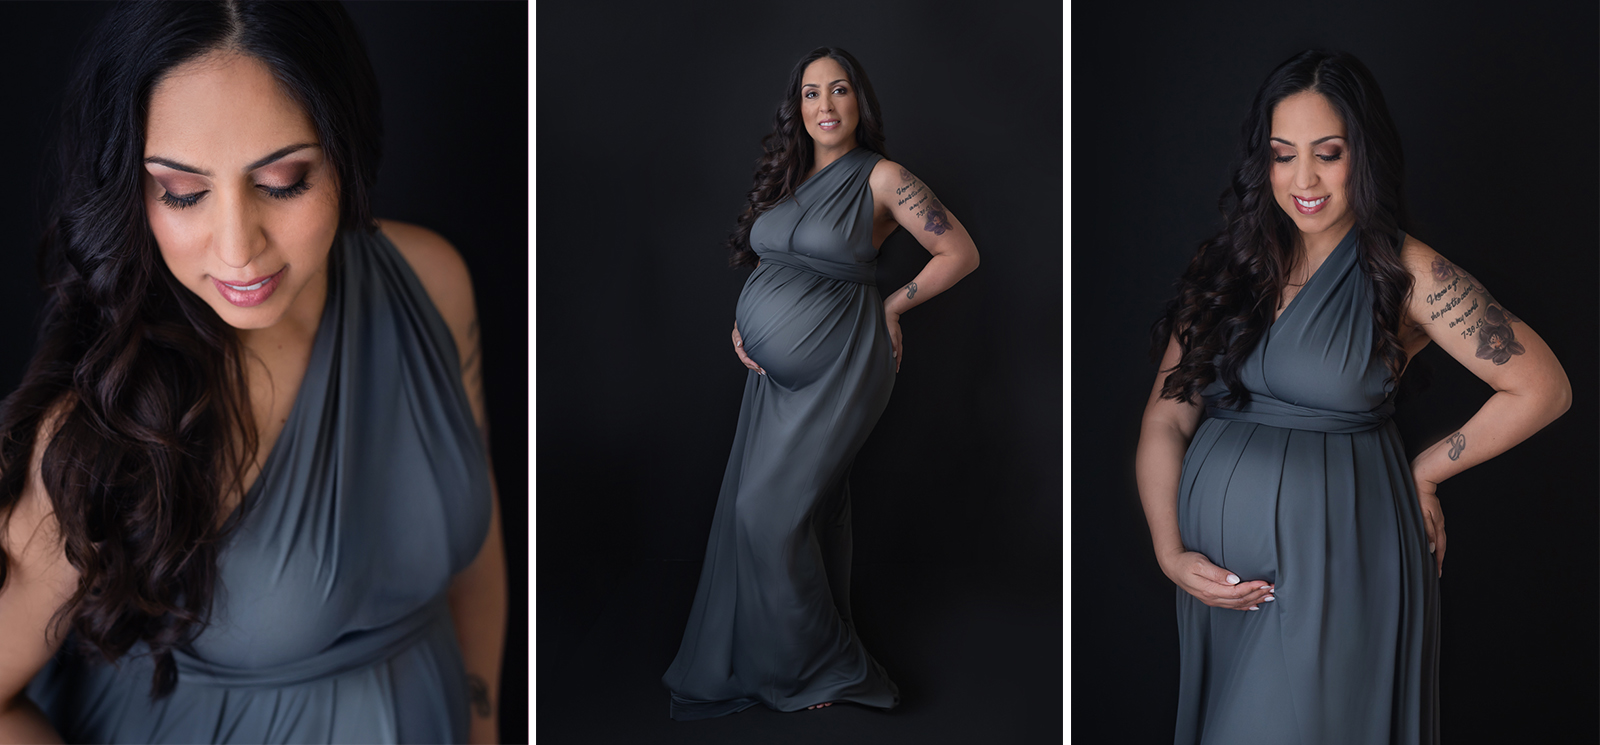 vanity-fair-styled-maternity-pictures.jpg